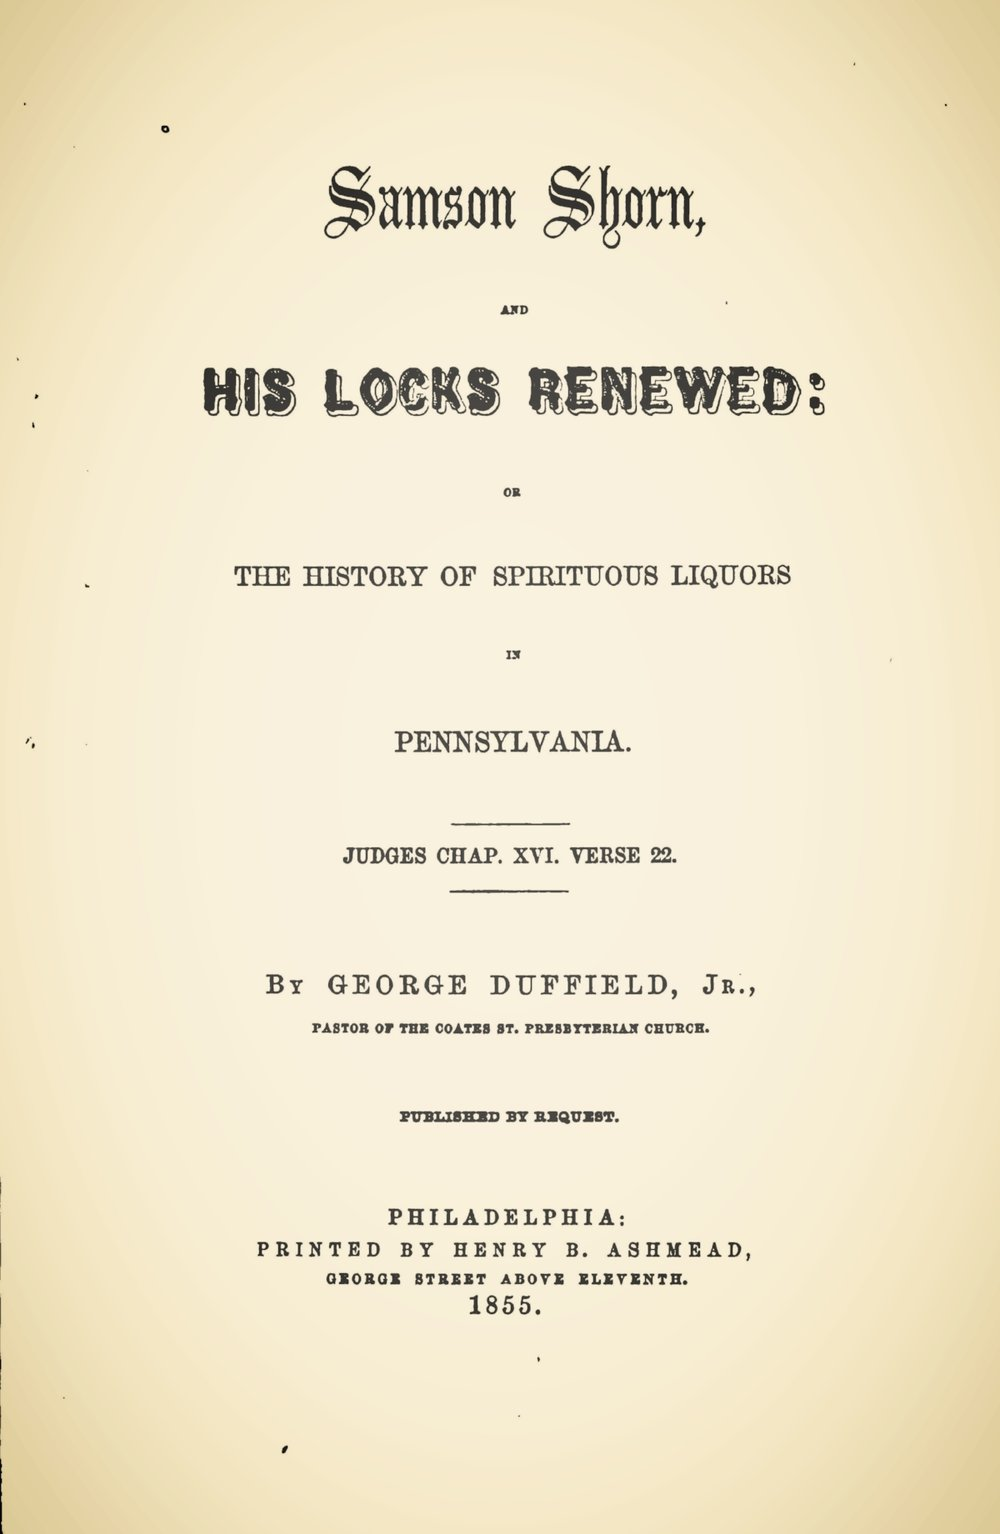 Duffield, IV, George, Samson Shorn, and His Locks Renewed Title Page.jpg